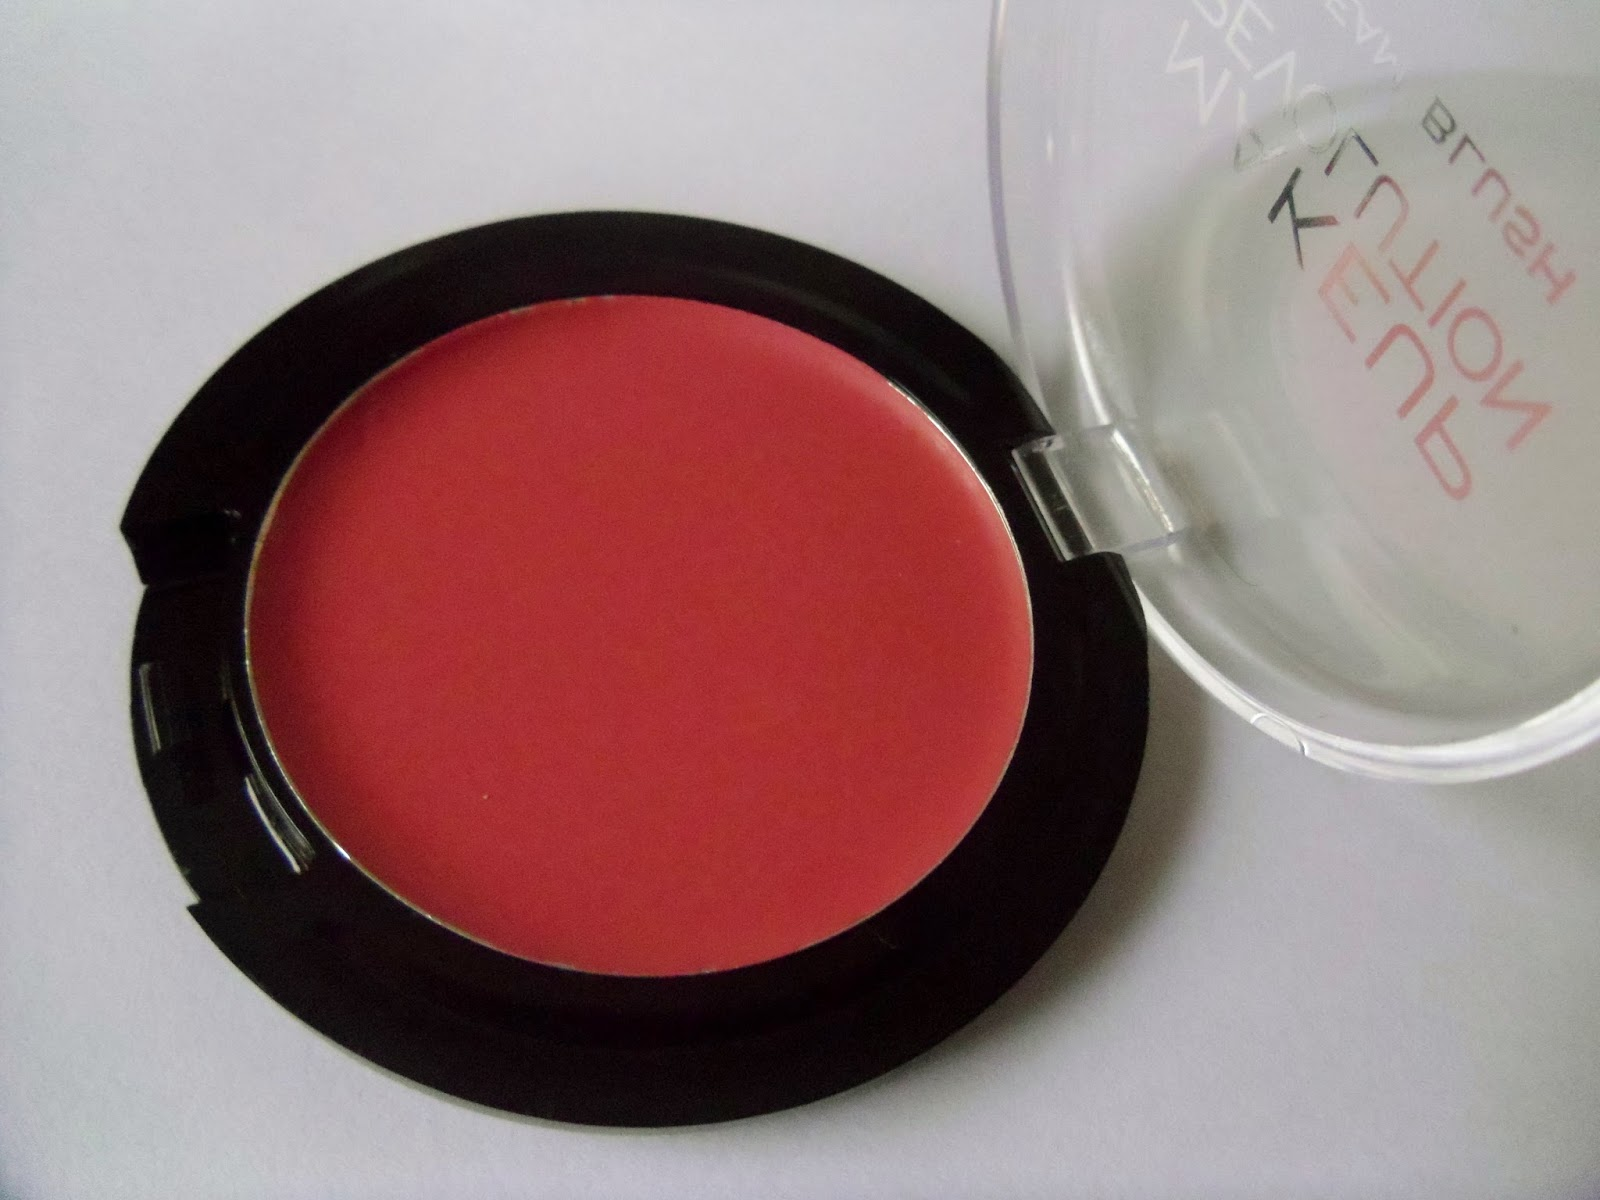 Makeup Revolution Cream Blush - Rose Cream